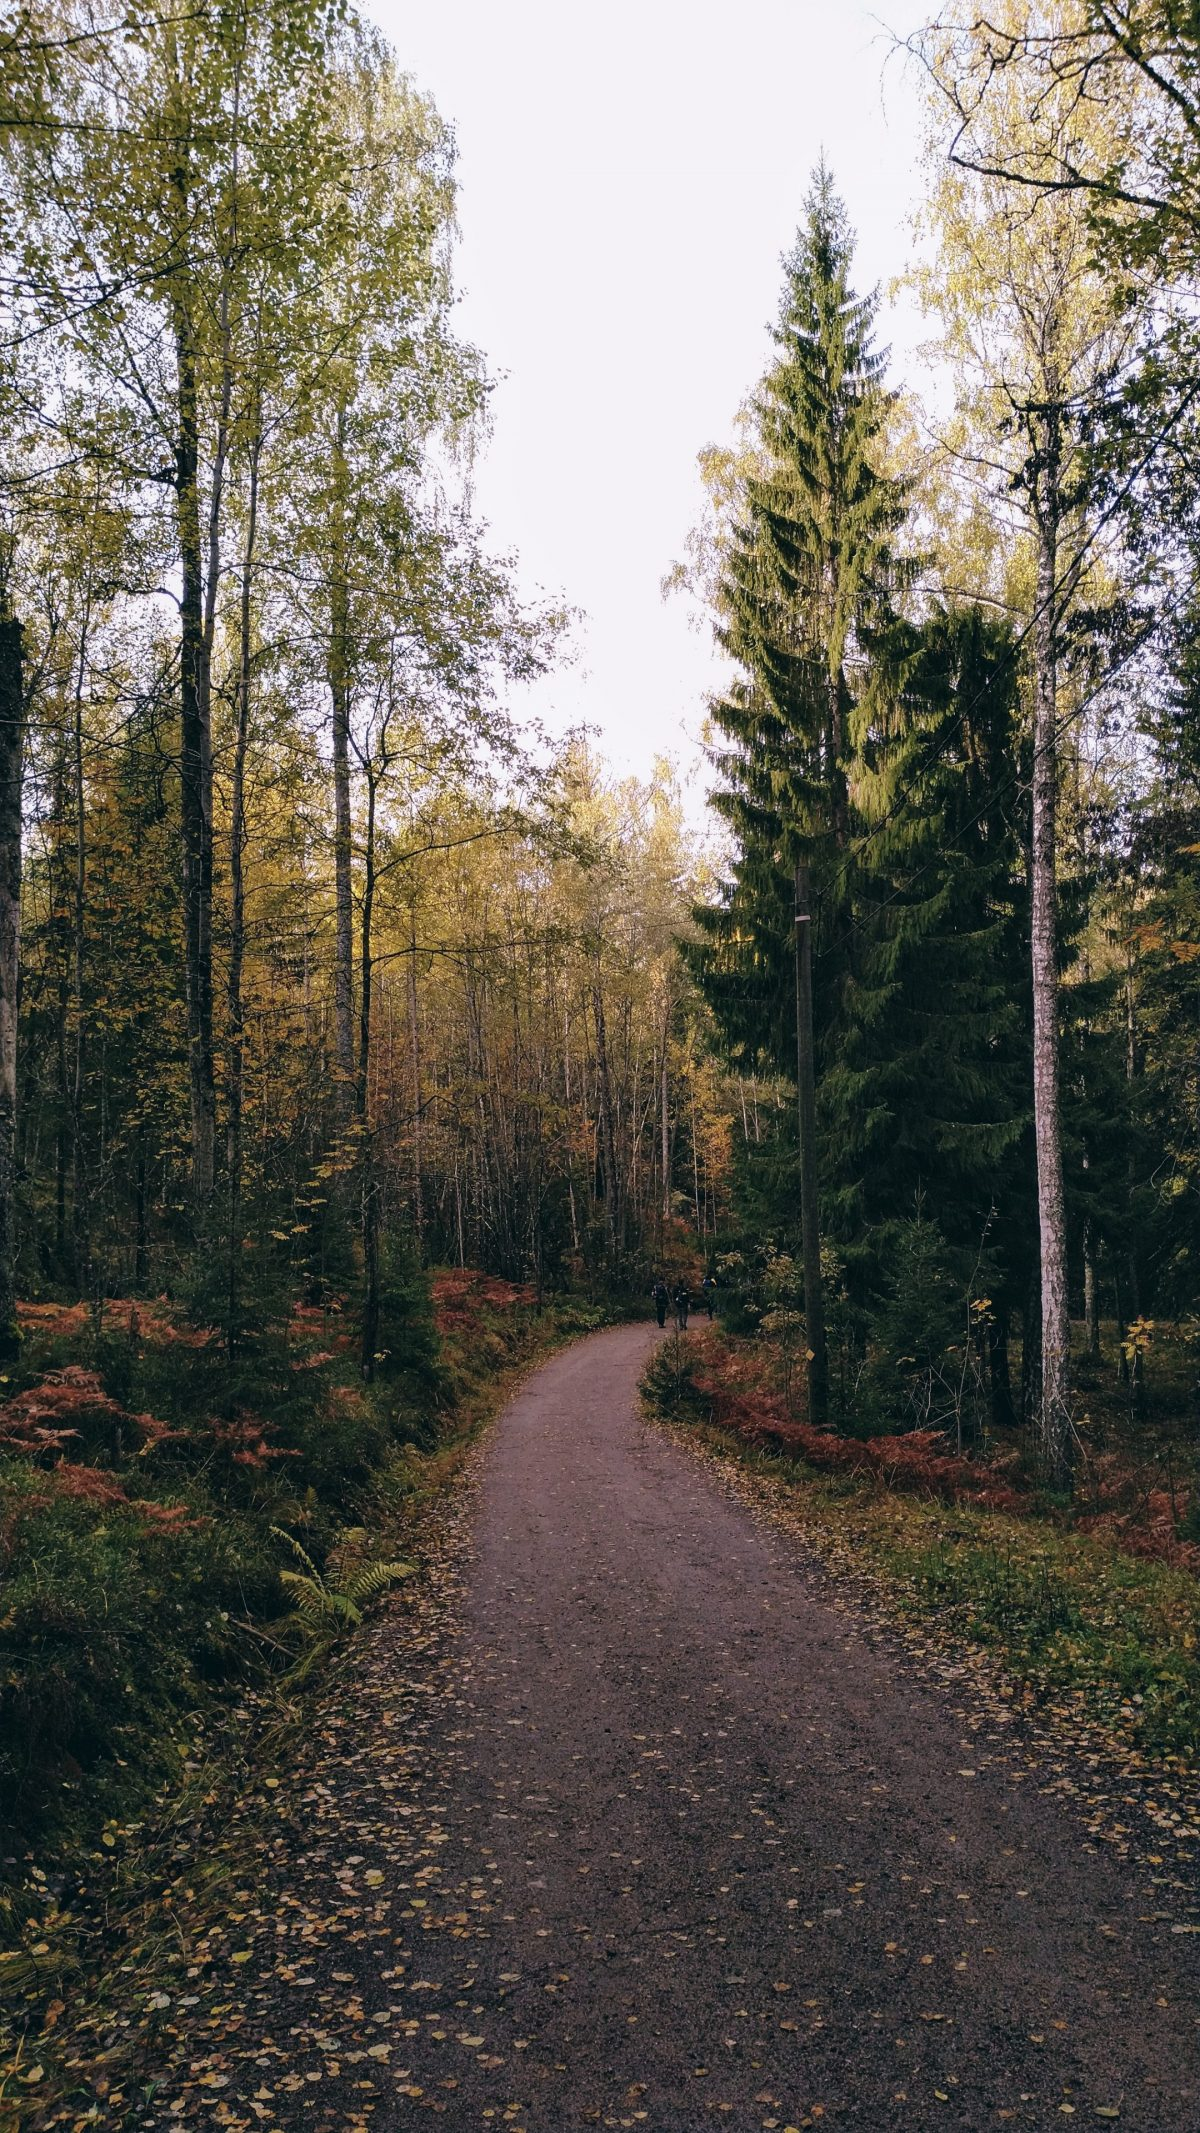 Autumn golden leaf hiking trail at Nuuksio Park